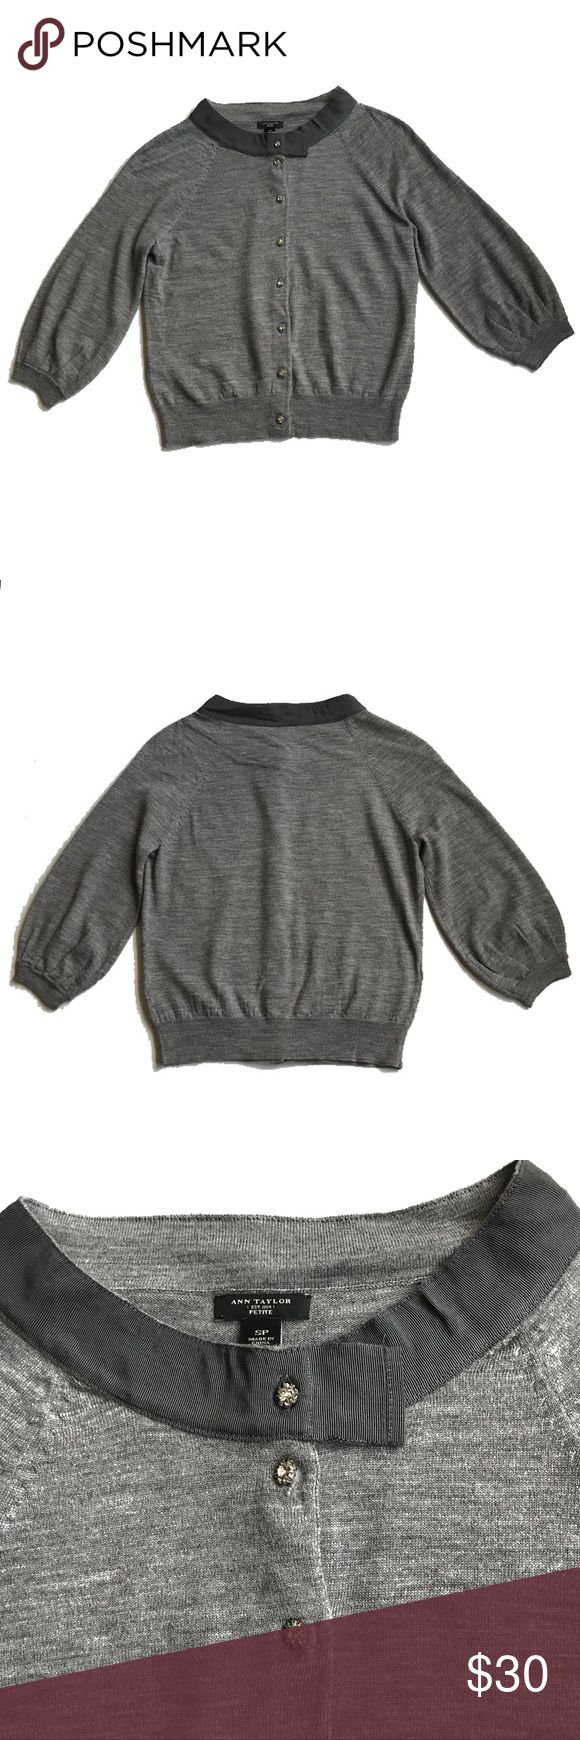 """💕Ann Taylor Gray Merino Wool Petite Cardigan Beautiful cardigan with amazing details! Gently used, like new condition! Buttons are silver with beautiful clear stones ( all in tact), 3/4 length gathered sleeves.  Ribbon trim on neck. Approx Measurements: 20"""" long from shoulder to hem, 16"""" armpit to armpit. Merino wool, dry clean. Ann Taylor Sweaters Cardigans"""